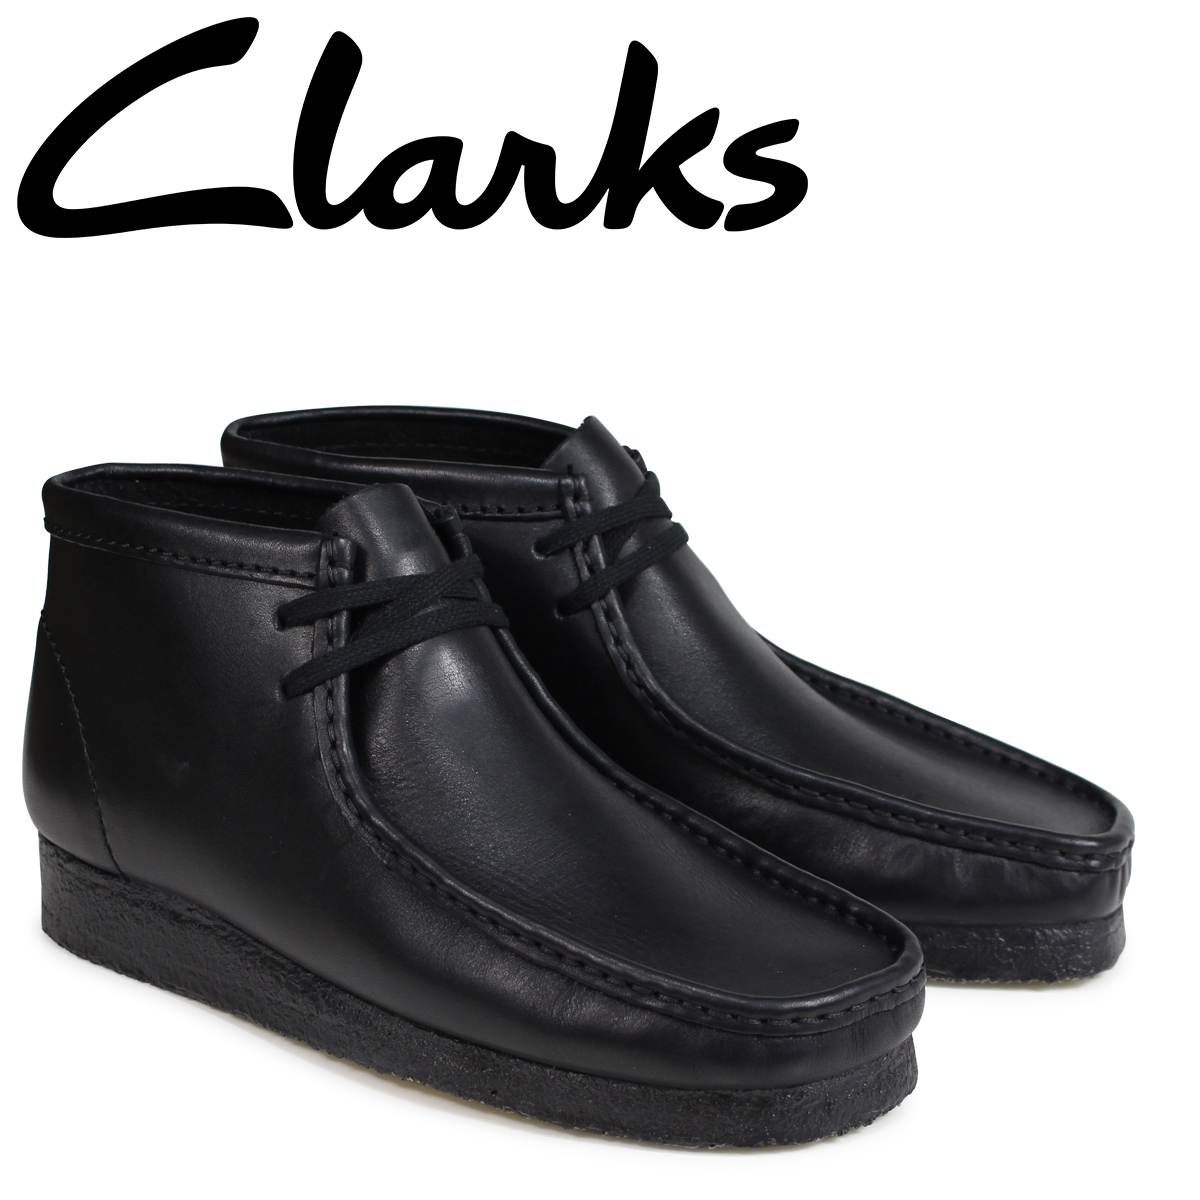 be9353c2ad3b9 Clarks Clarks Wallaby boots WALLABEE BOOT M wise leather men s 26103666  black  5   2 new stock   regular